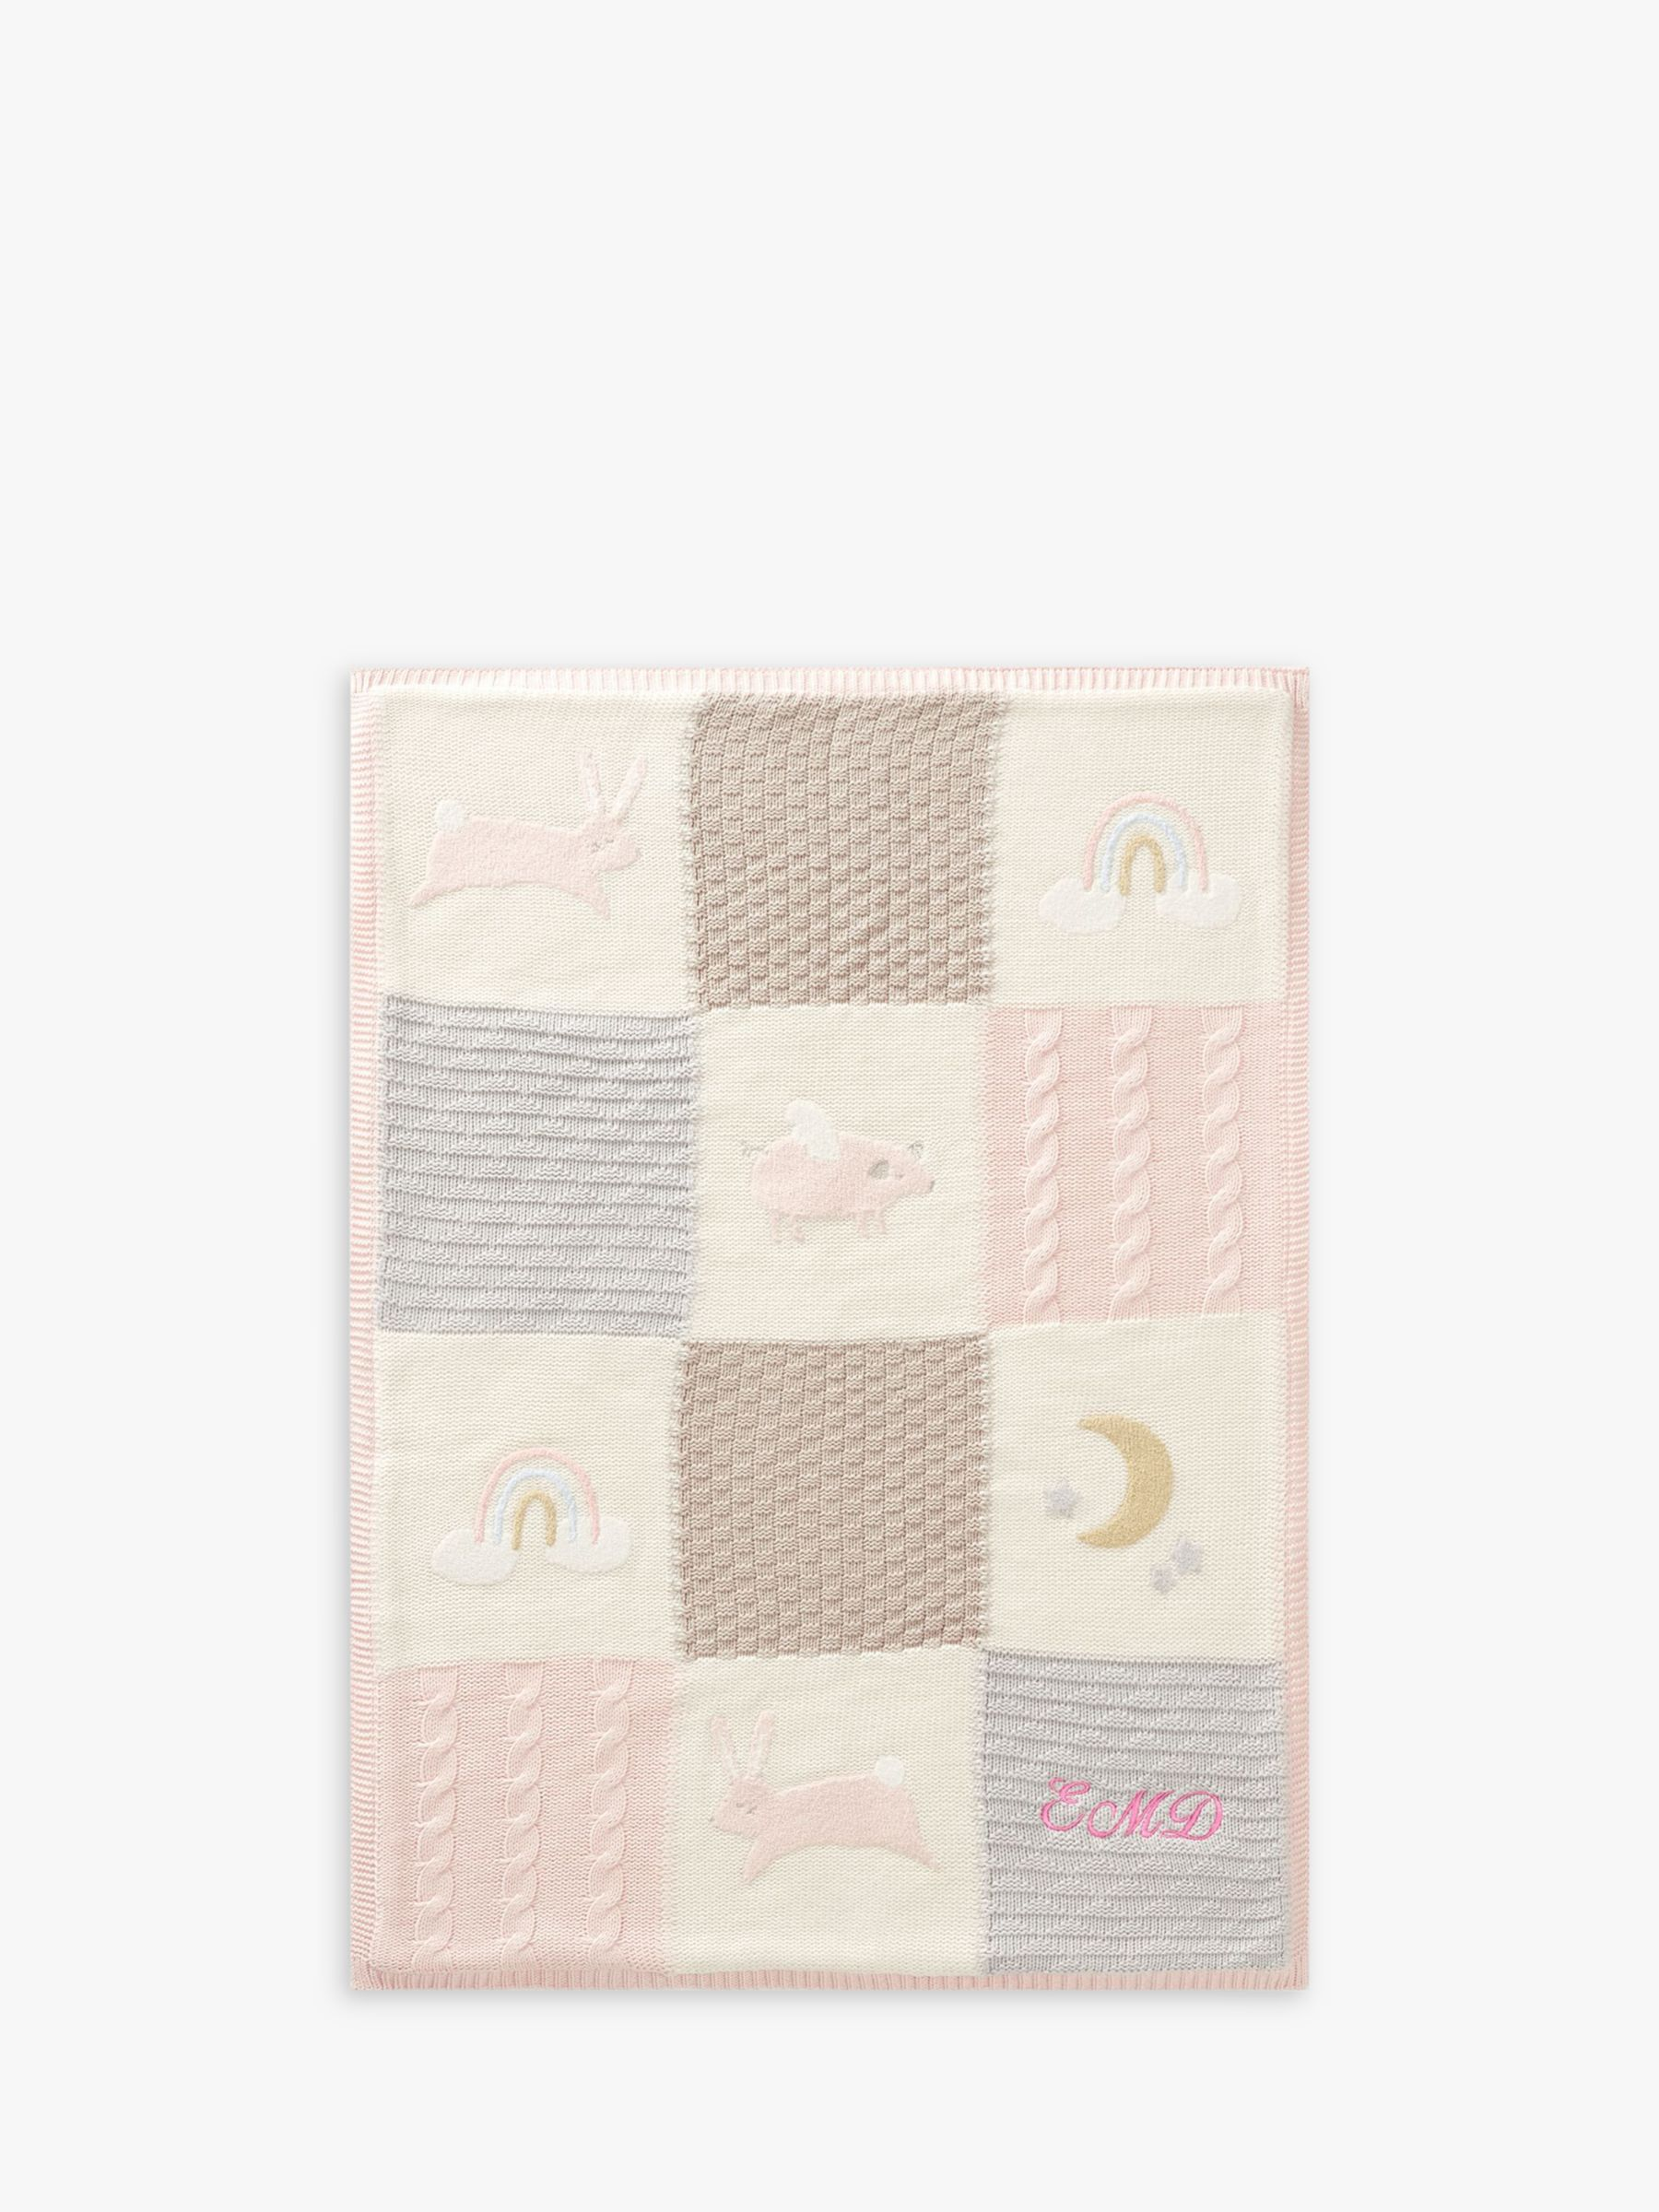 Pottery Barn Kids Bunny Quilted Baby Blanket, Pink